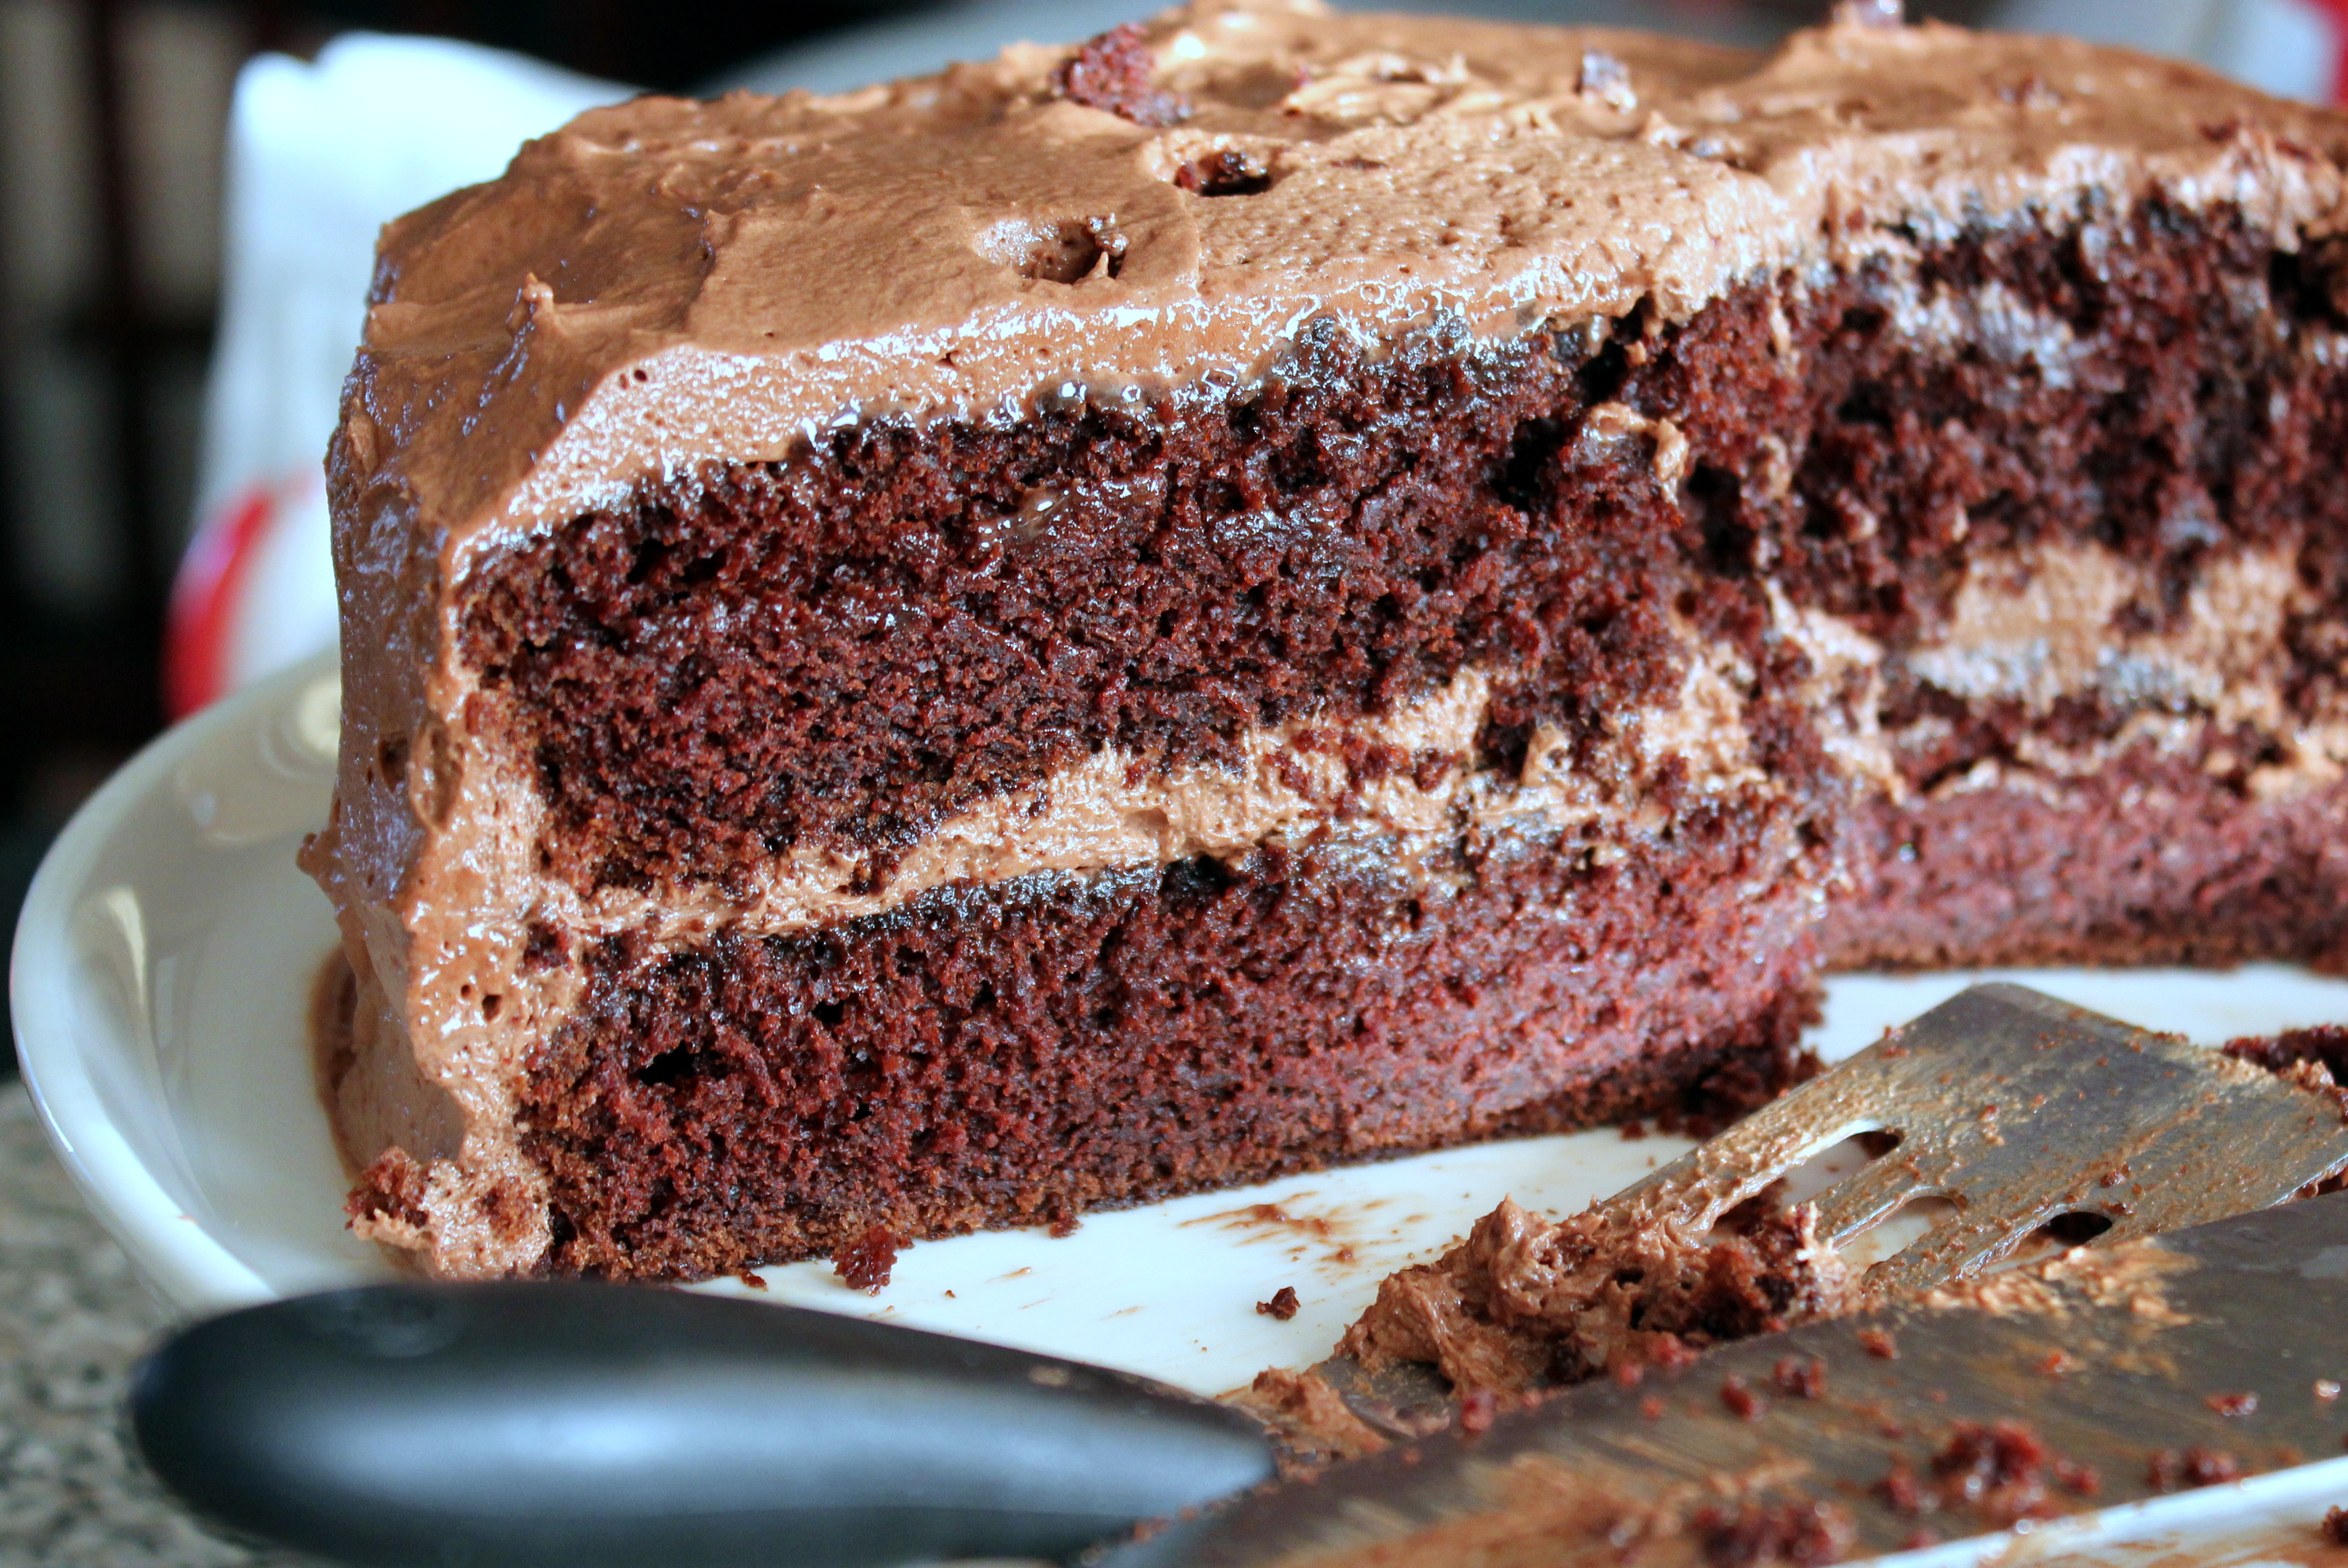 Chocolate cake recipe with buttercream frosting